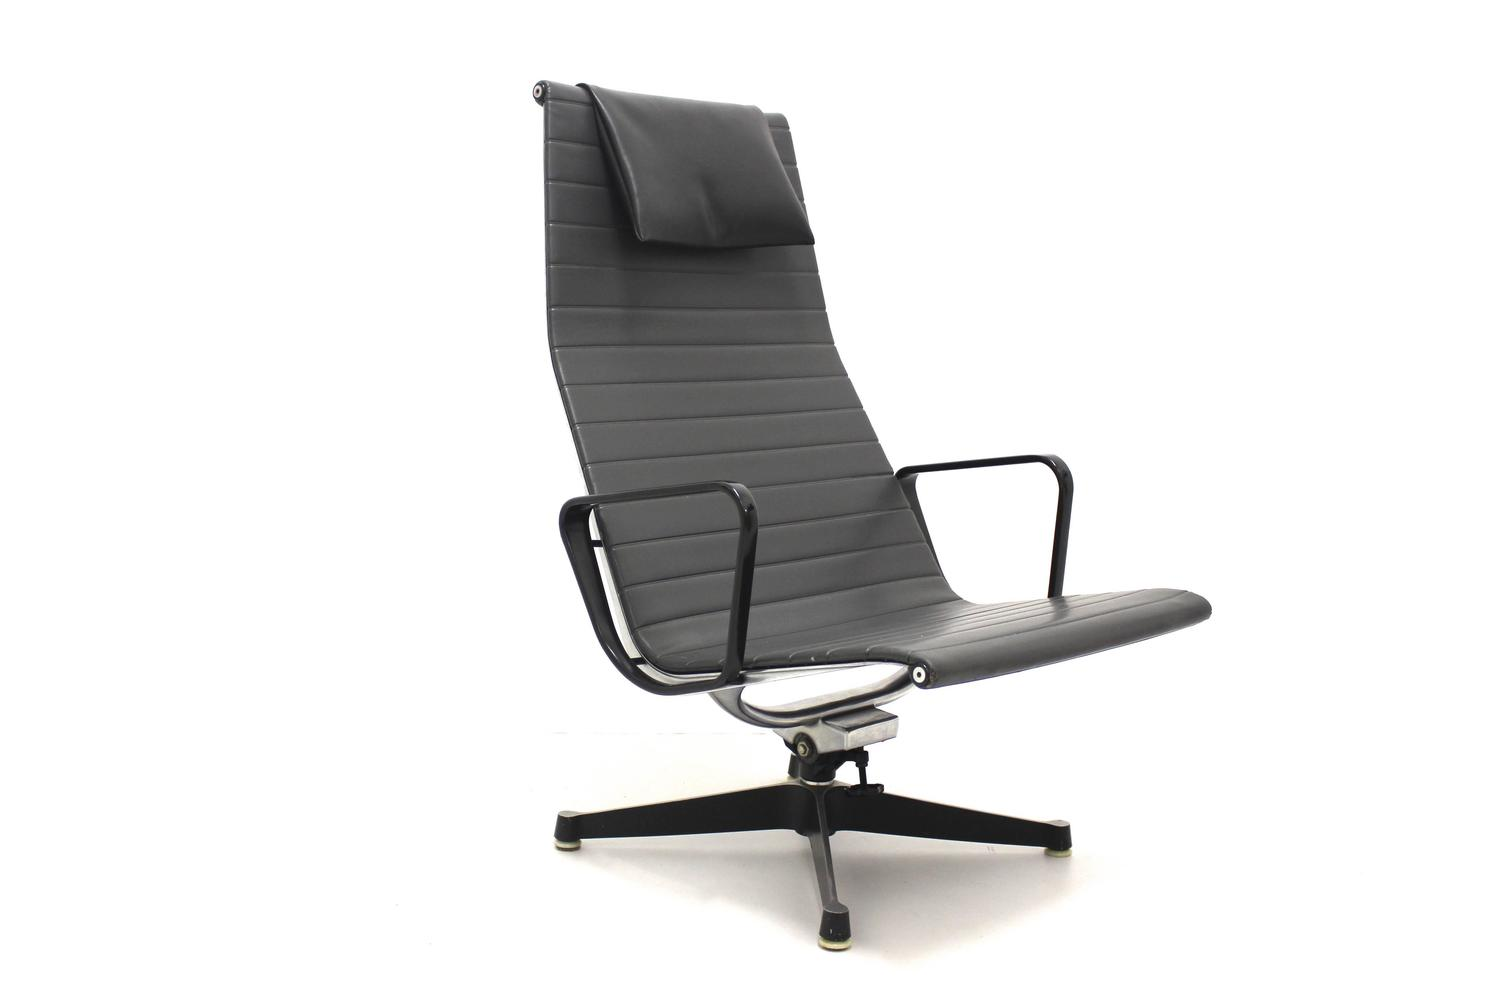 aluminium lounge chair ea 124 by ray and charles eames 1958 for sale at 1stdibs. Black Bedroom Furniture Sets. Home Design Ideas